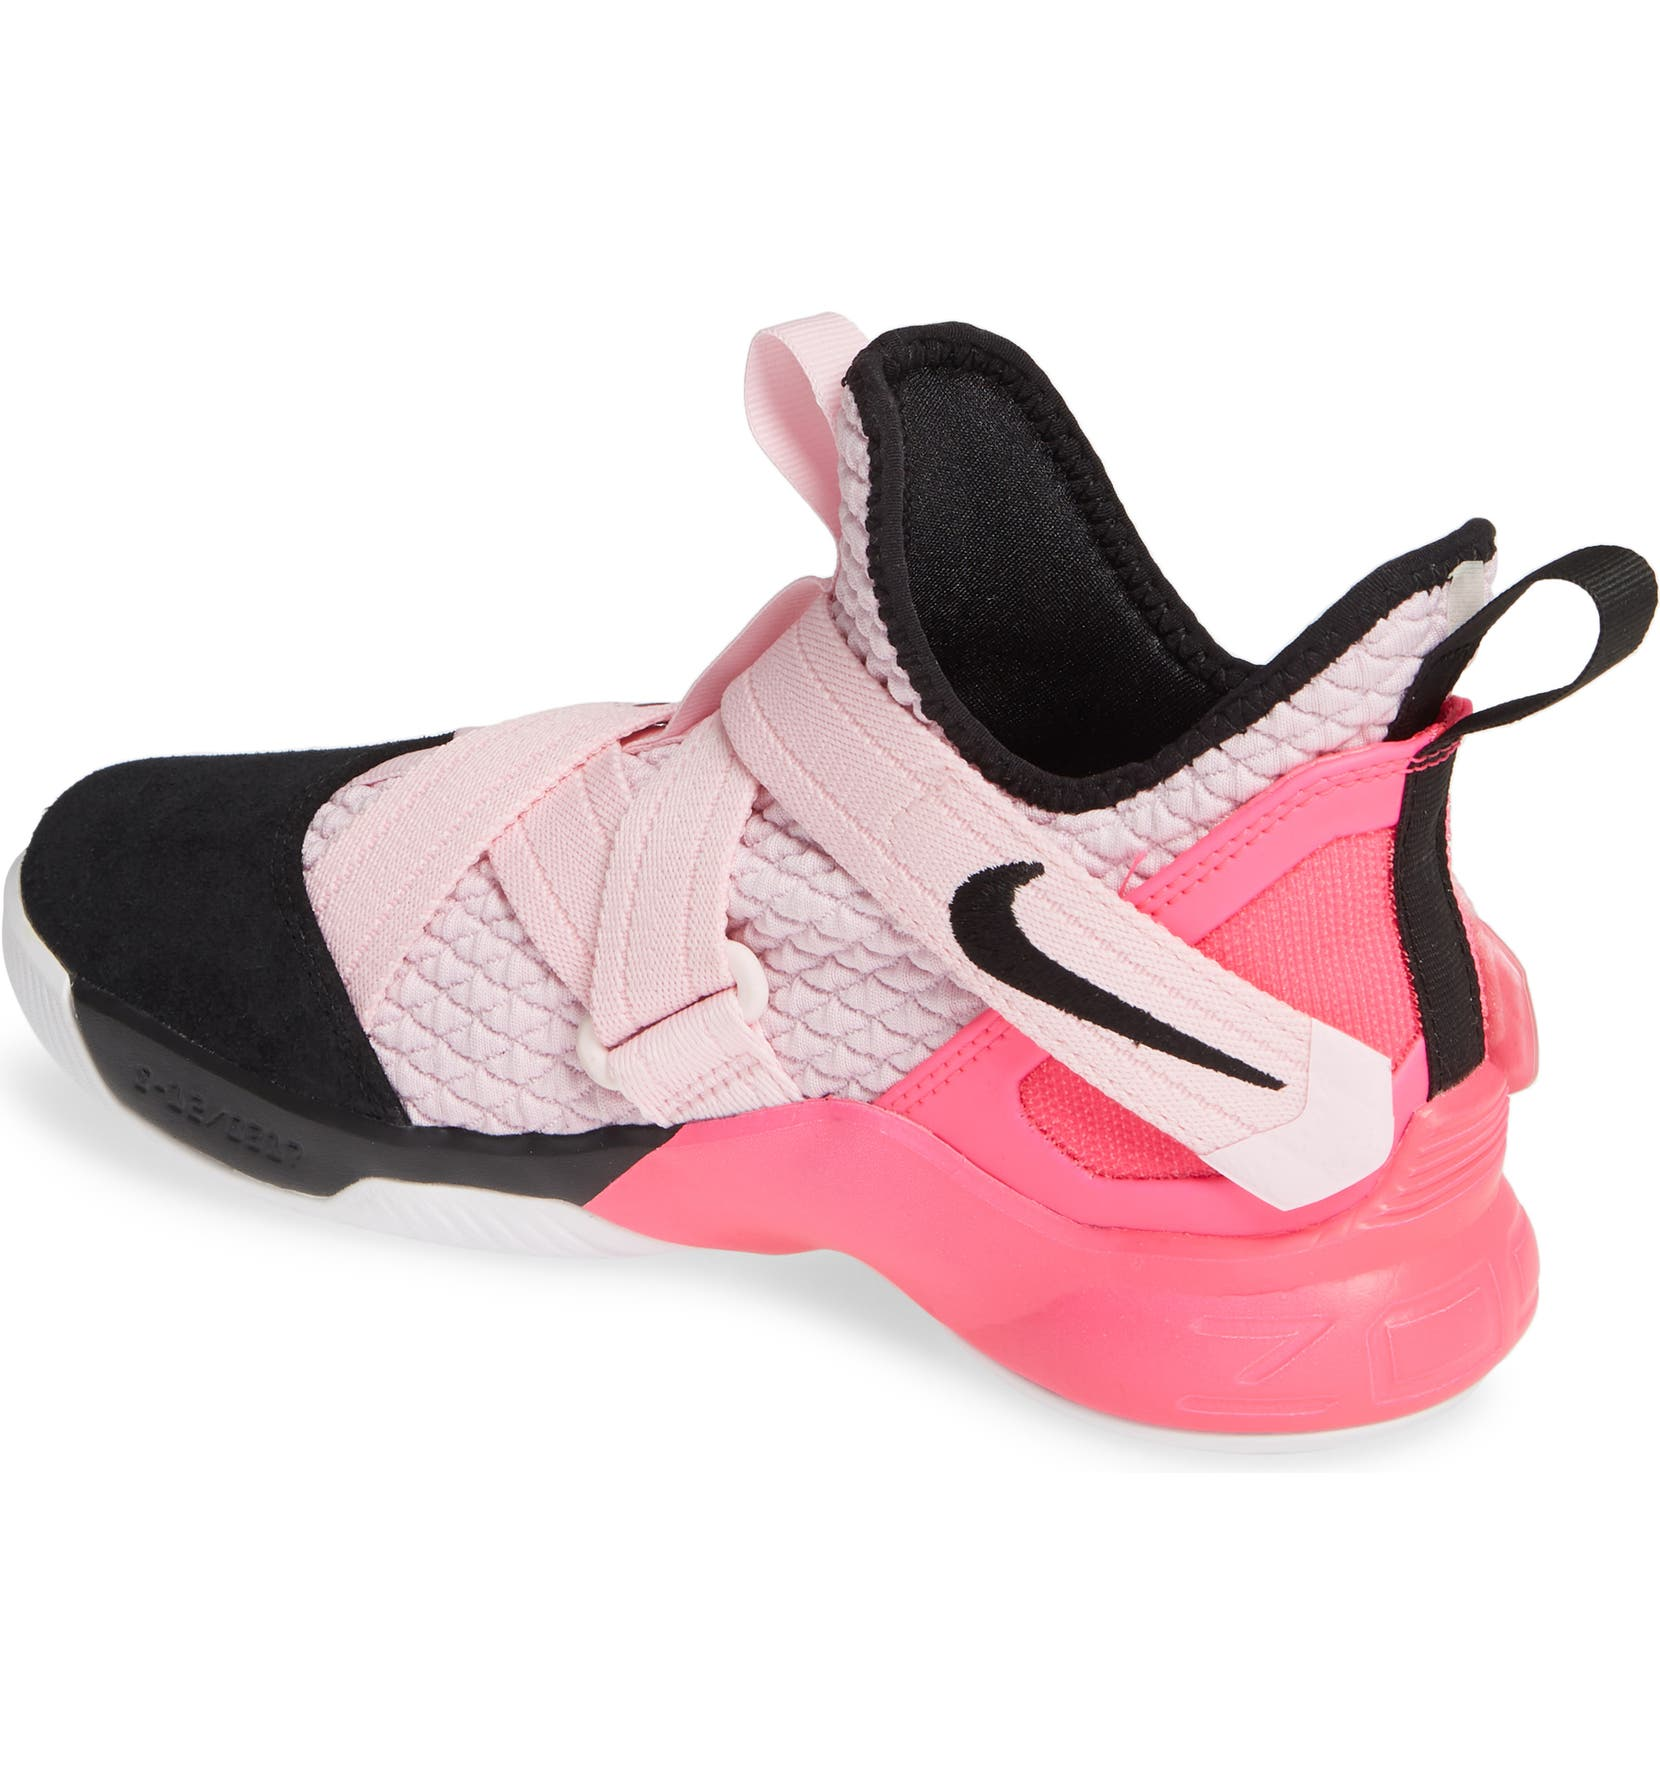 huge discount 956a4 be0ac Nike LeBron Soldier XII Basketball Shoe (Baby, Walker, Toddler, Little Kid    Big Kid)   Nordstrom